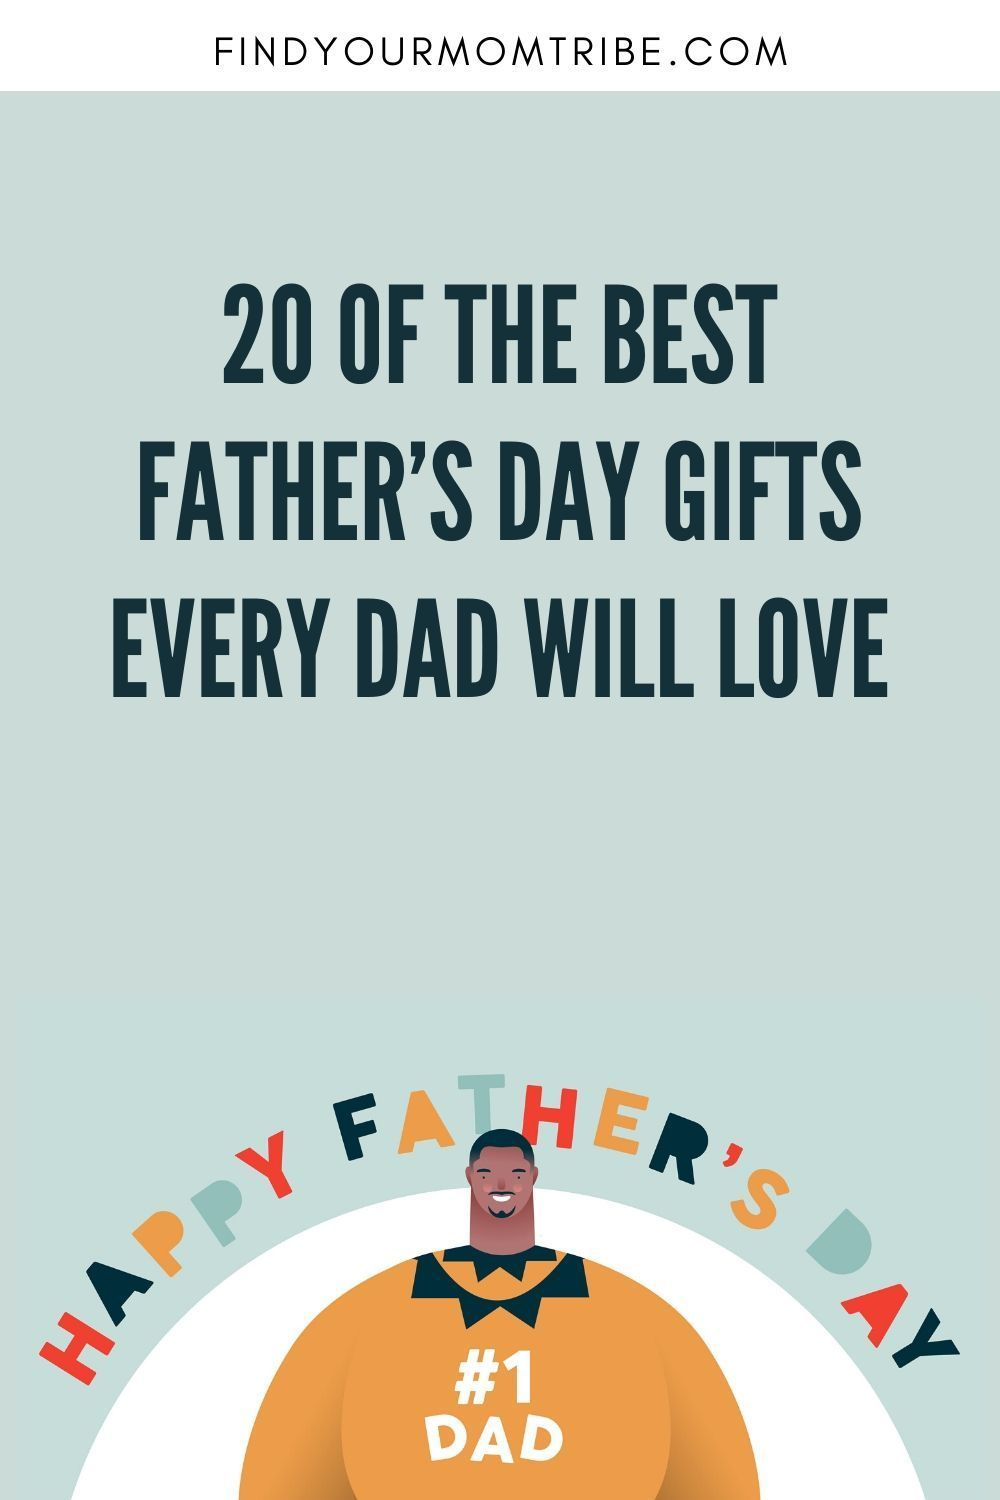 20 of the best fathers day gifts every dad will love in